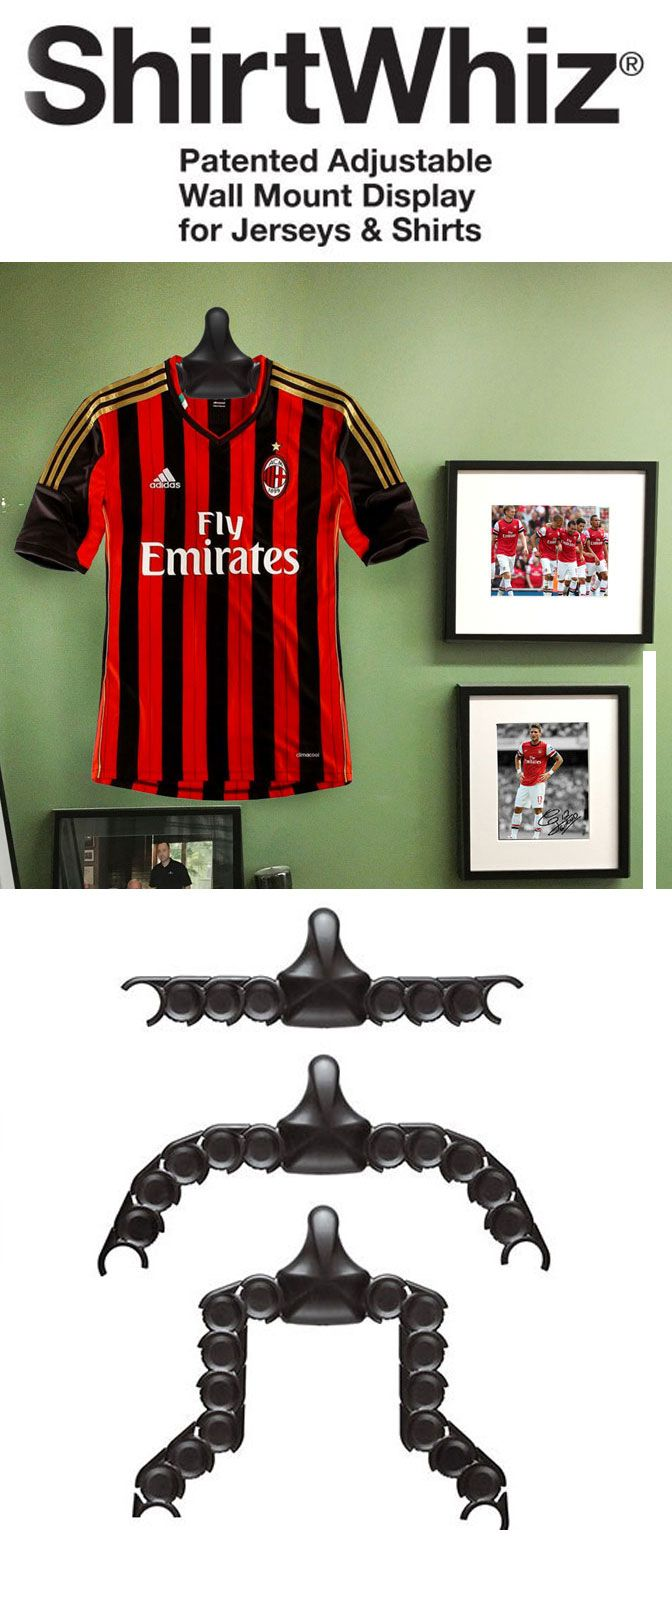 Man Cave Store New Jersey : Shirtwhiz jersey display hang any easily and